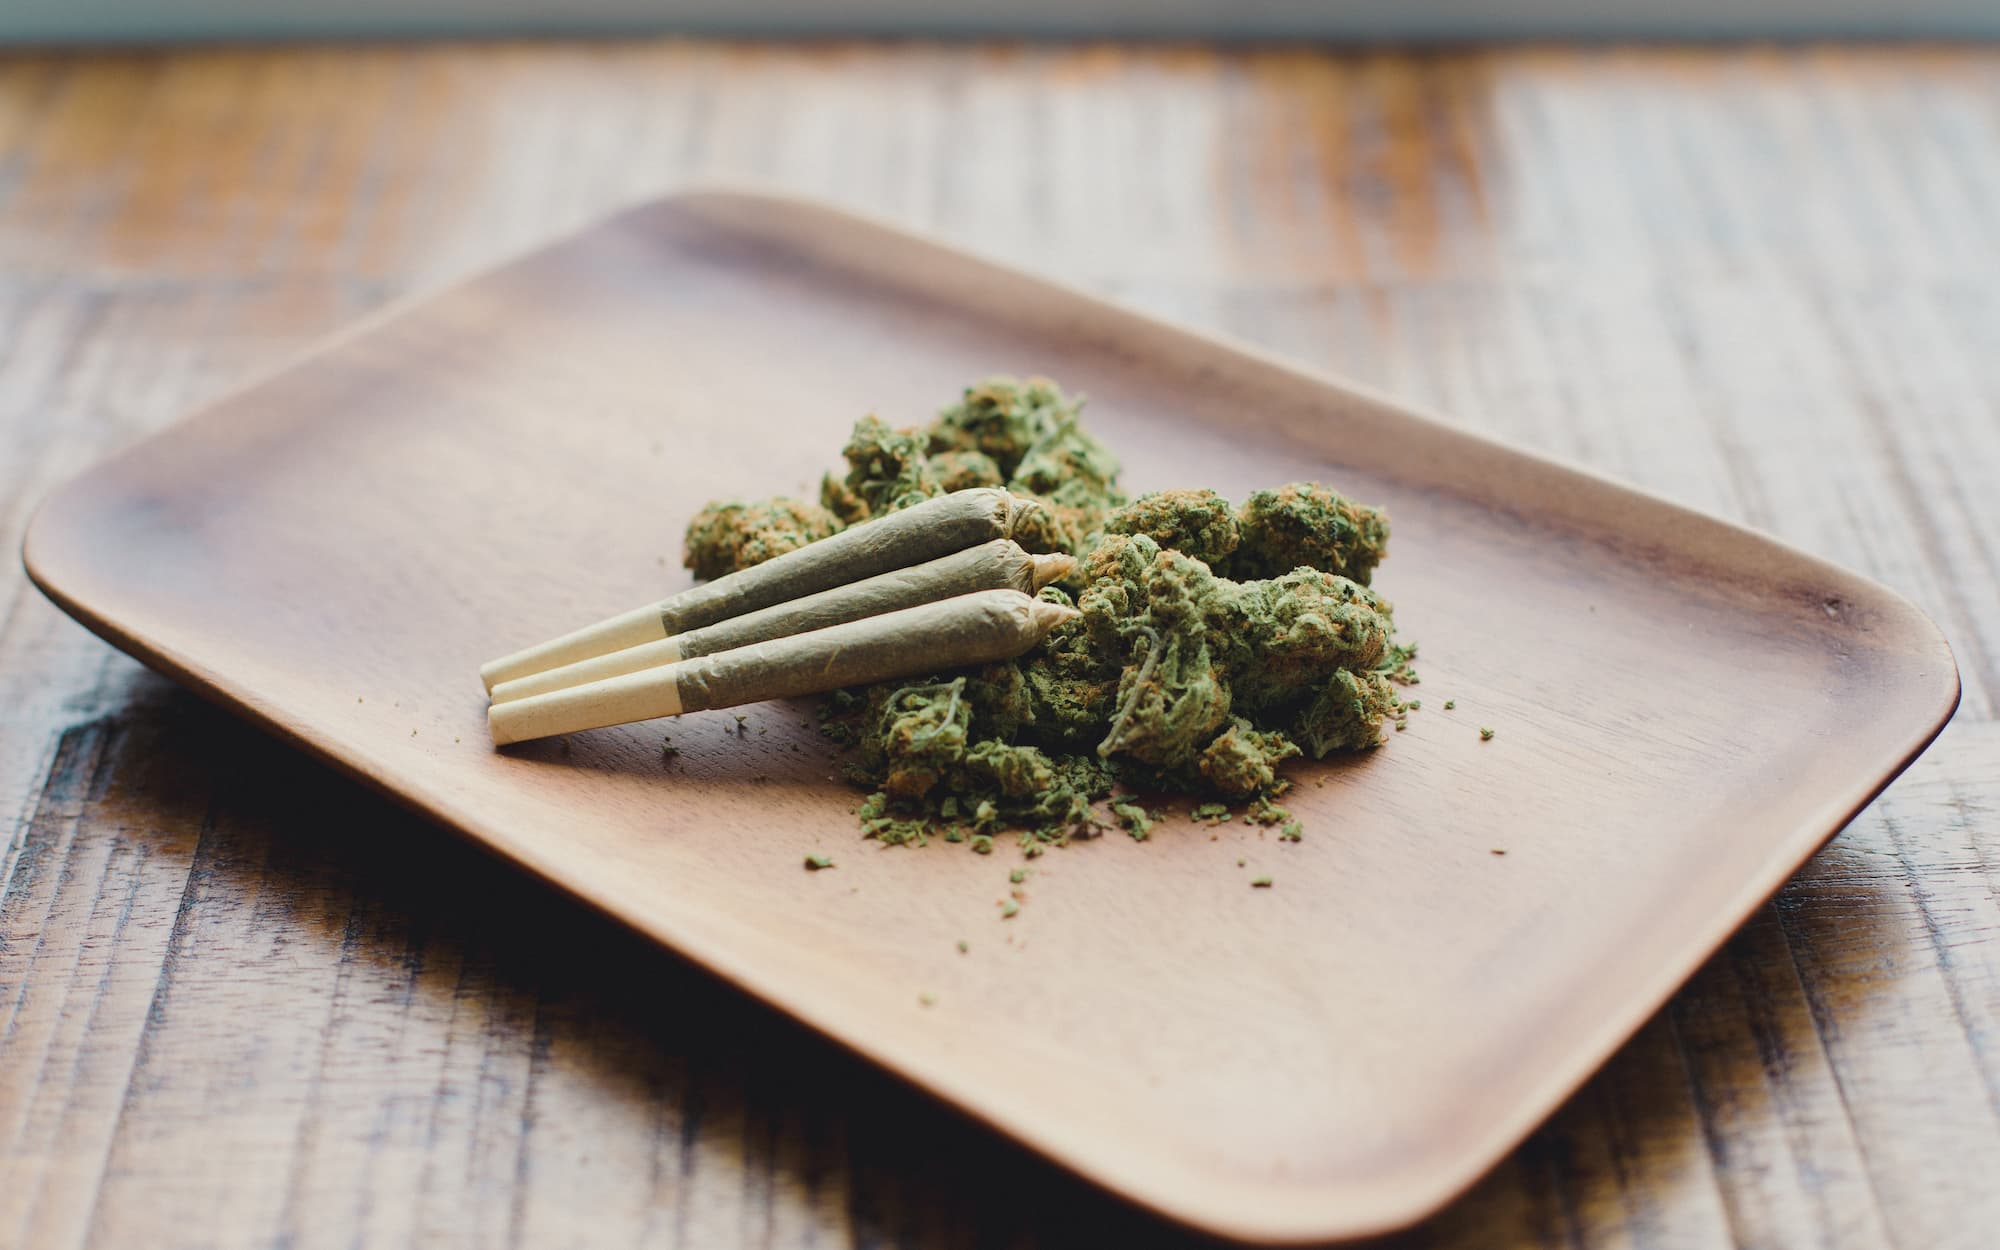 cannabis rolling tray with cannabis and 3 pre rolled joints